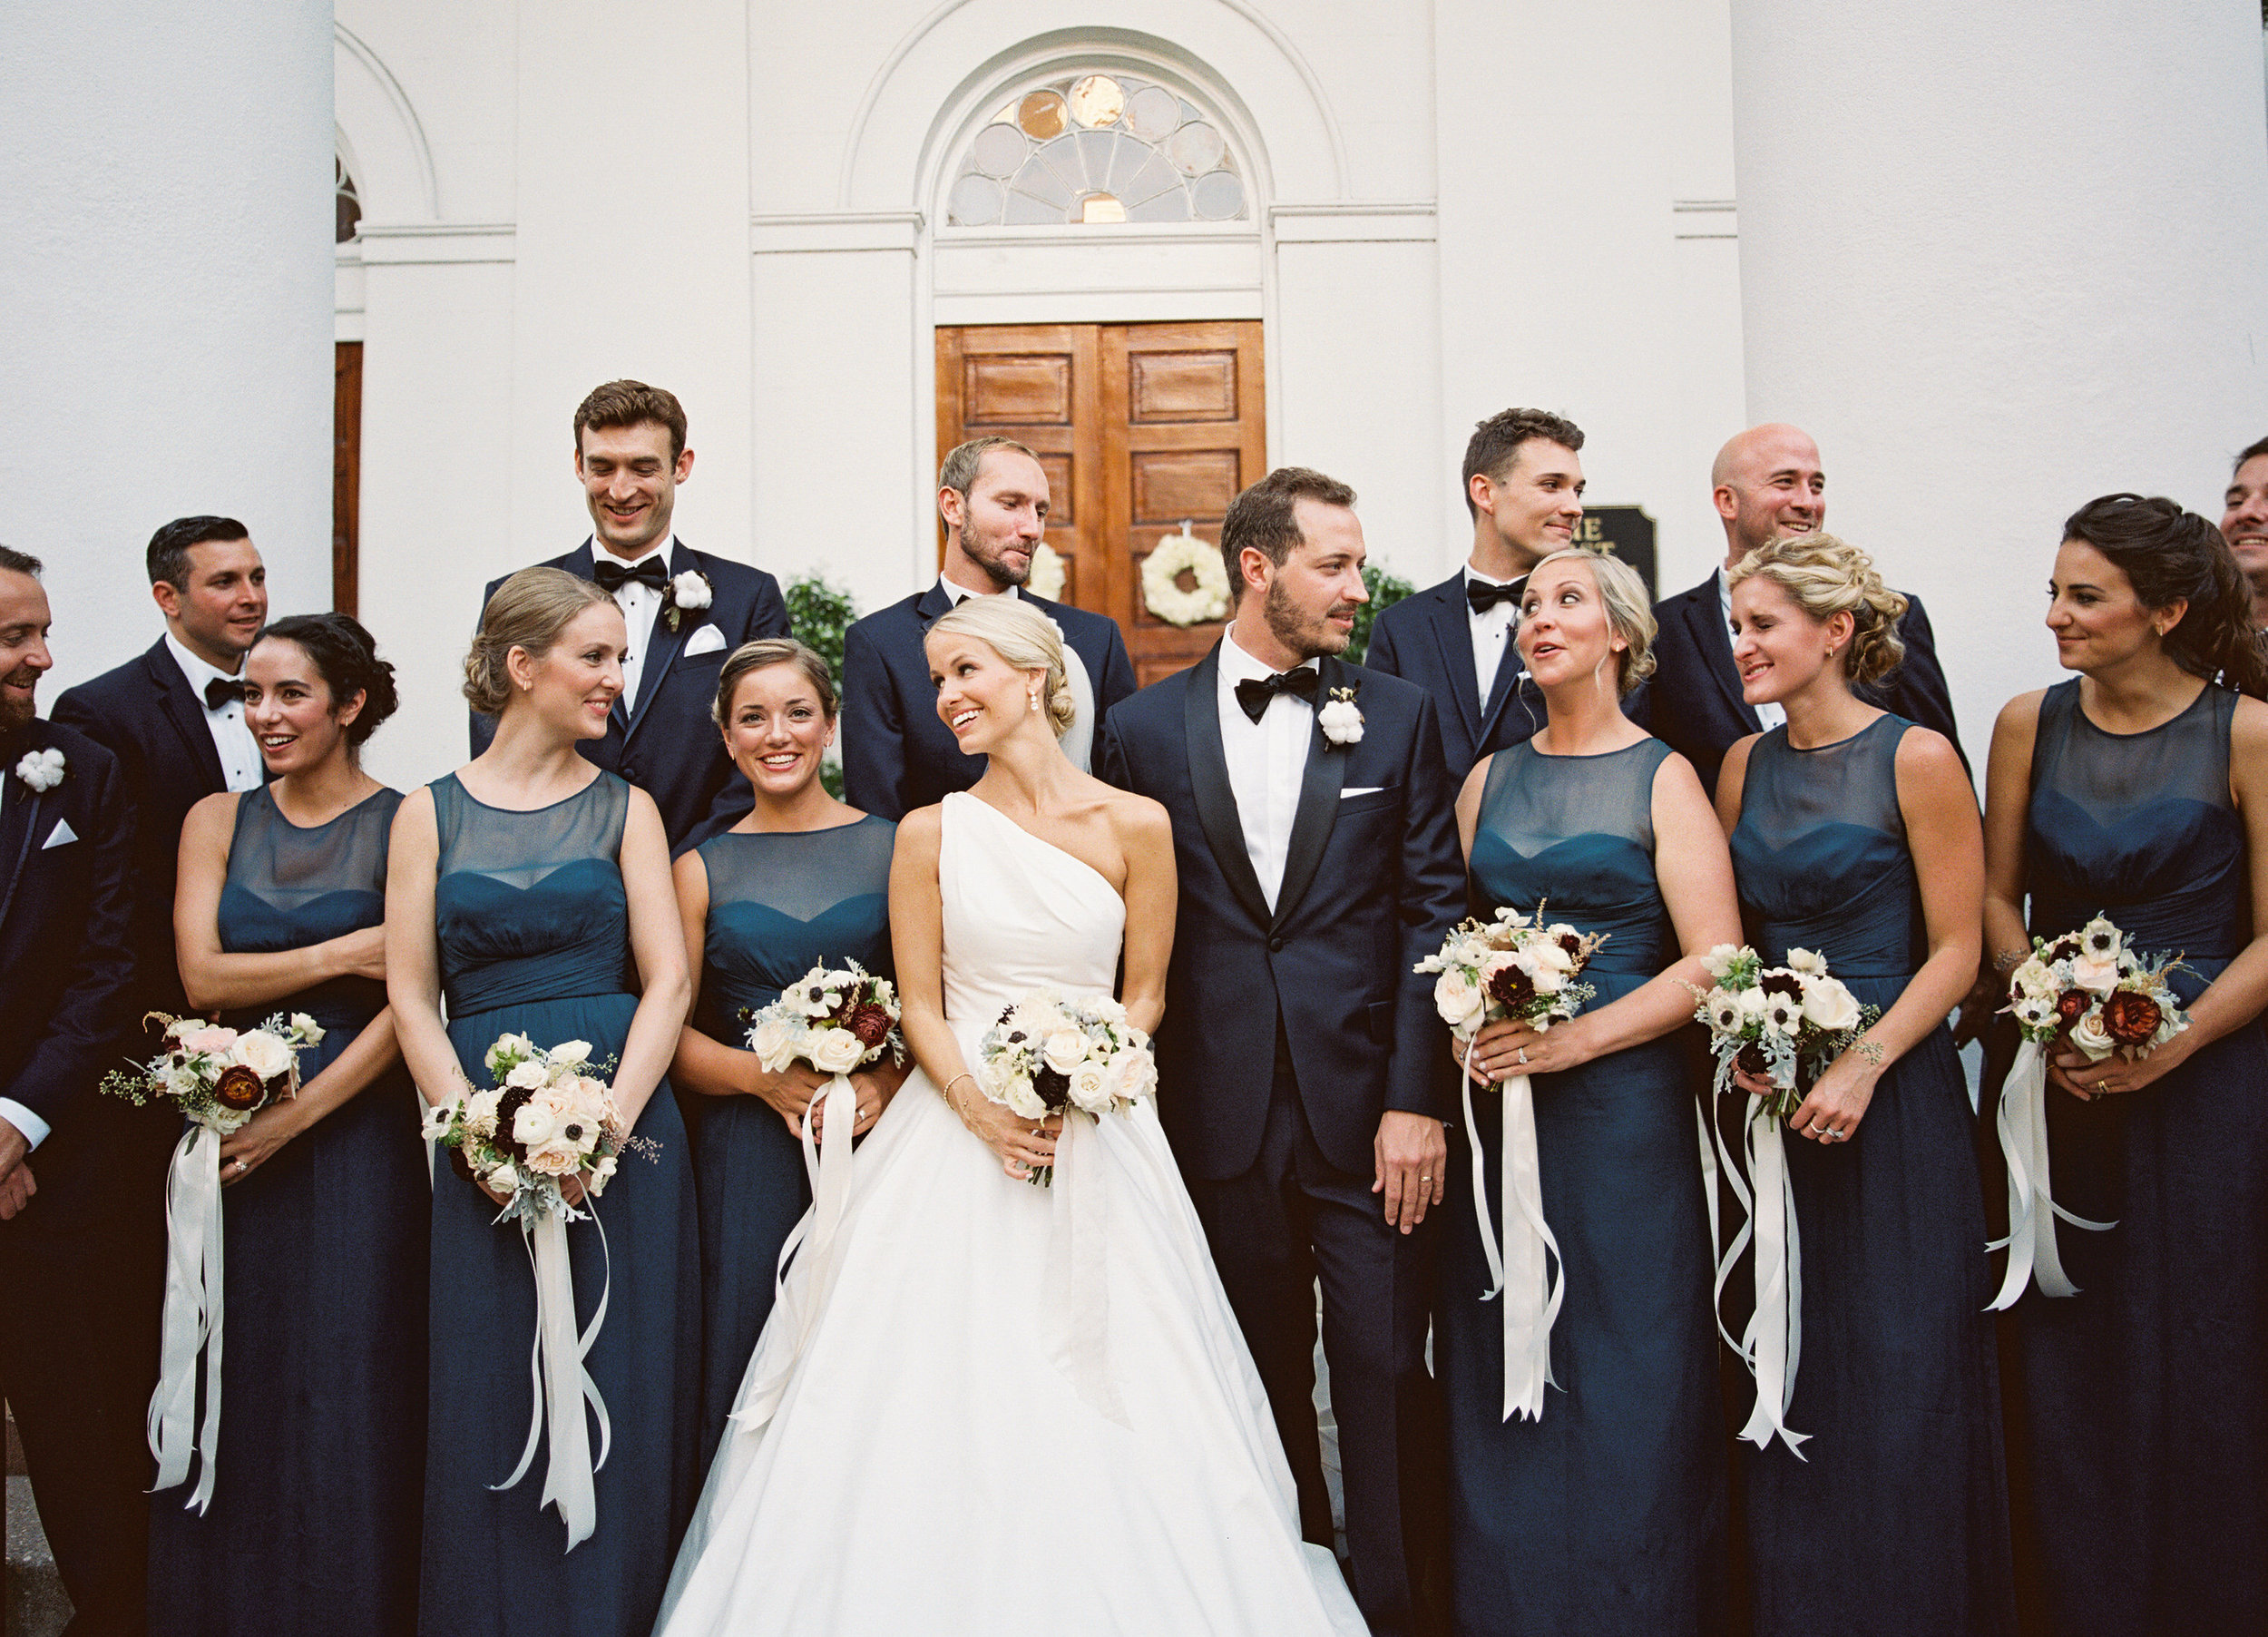 Bridesmaids in ocean teal dress and groomsmen in navy tuxedos at Charleston SC wedding  //  Wedding photography by Landon Jacob  //  A Lowcountry Wedding Magazine